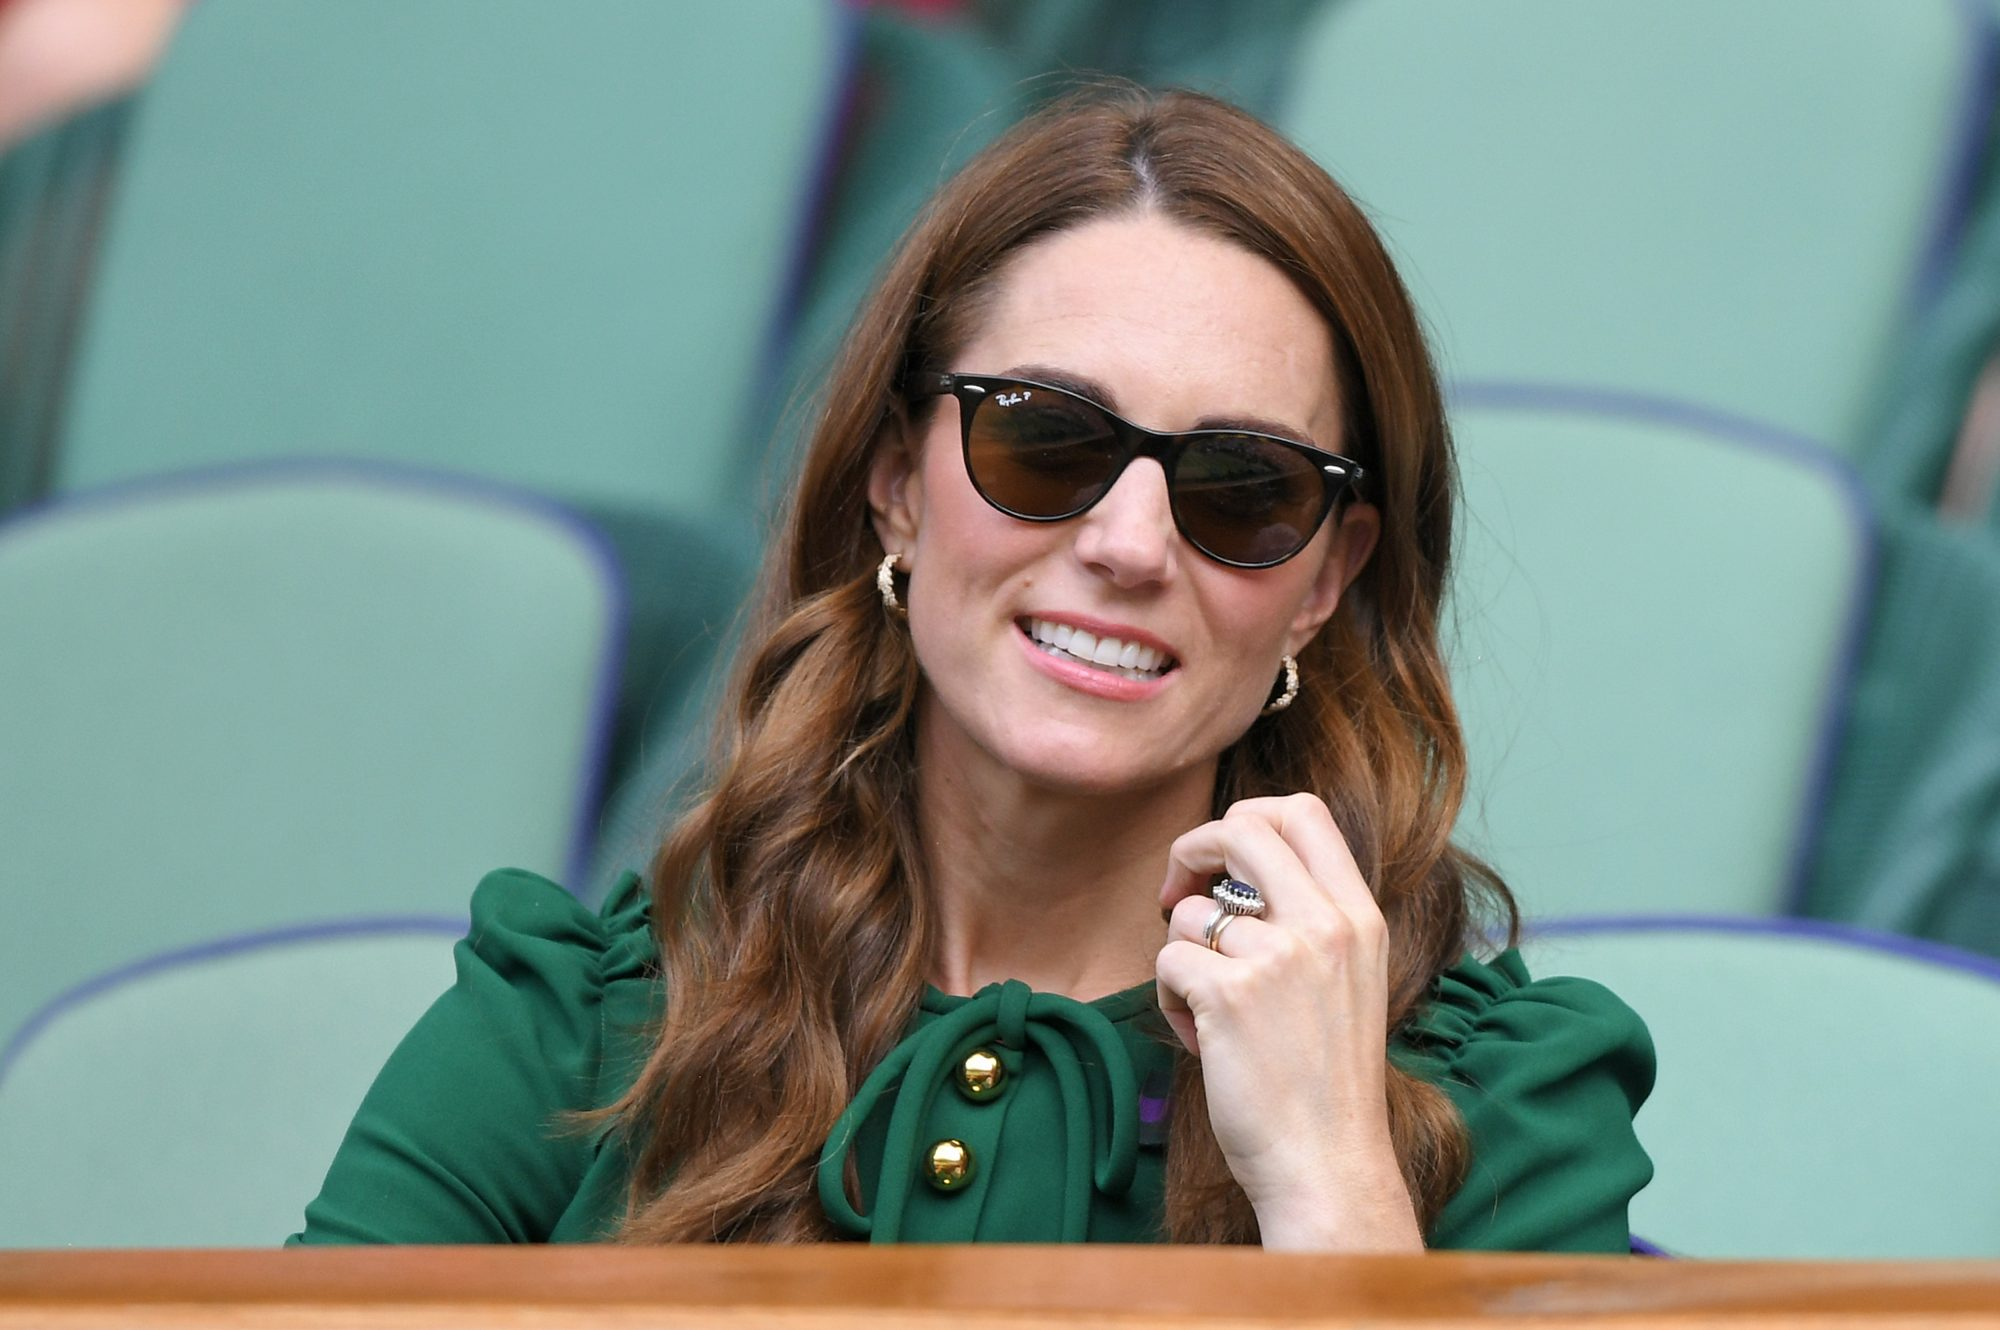 Kate Middleton's Ray-Ban Sunglasses on Sale for Black Friday 2019 on Amazon